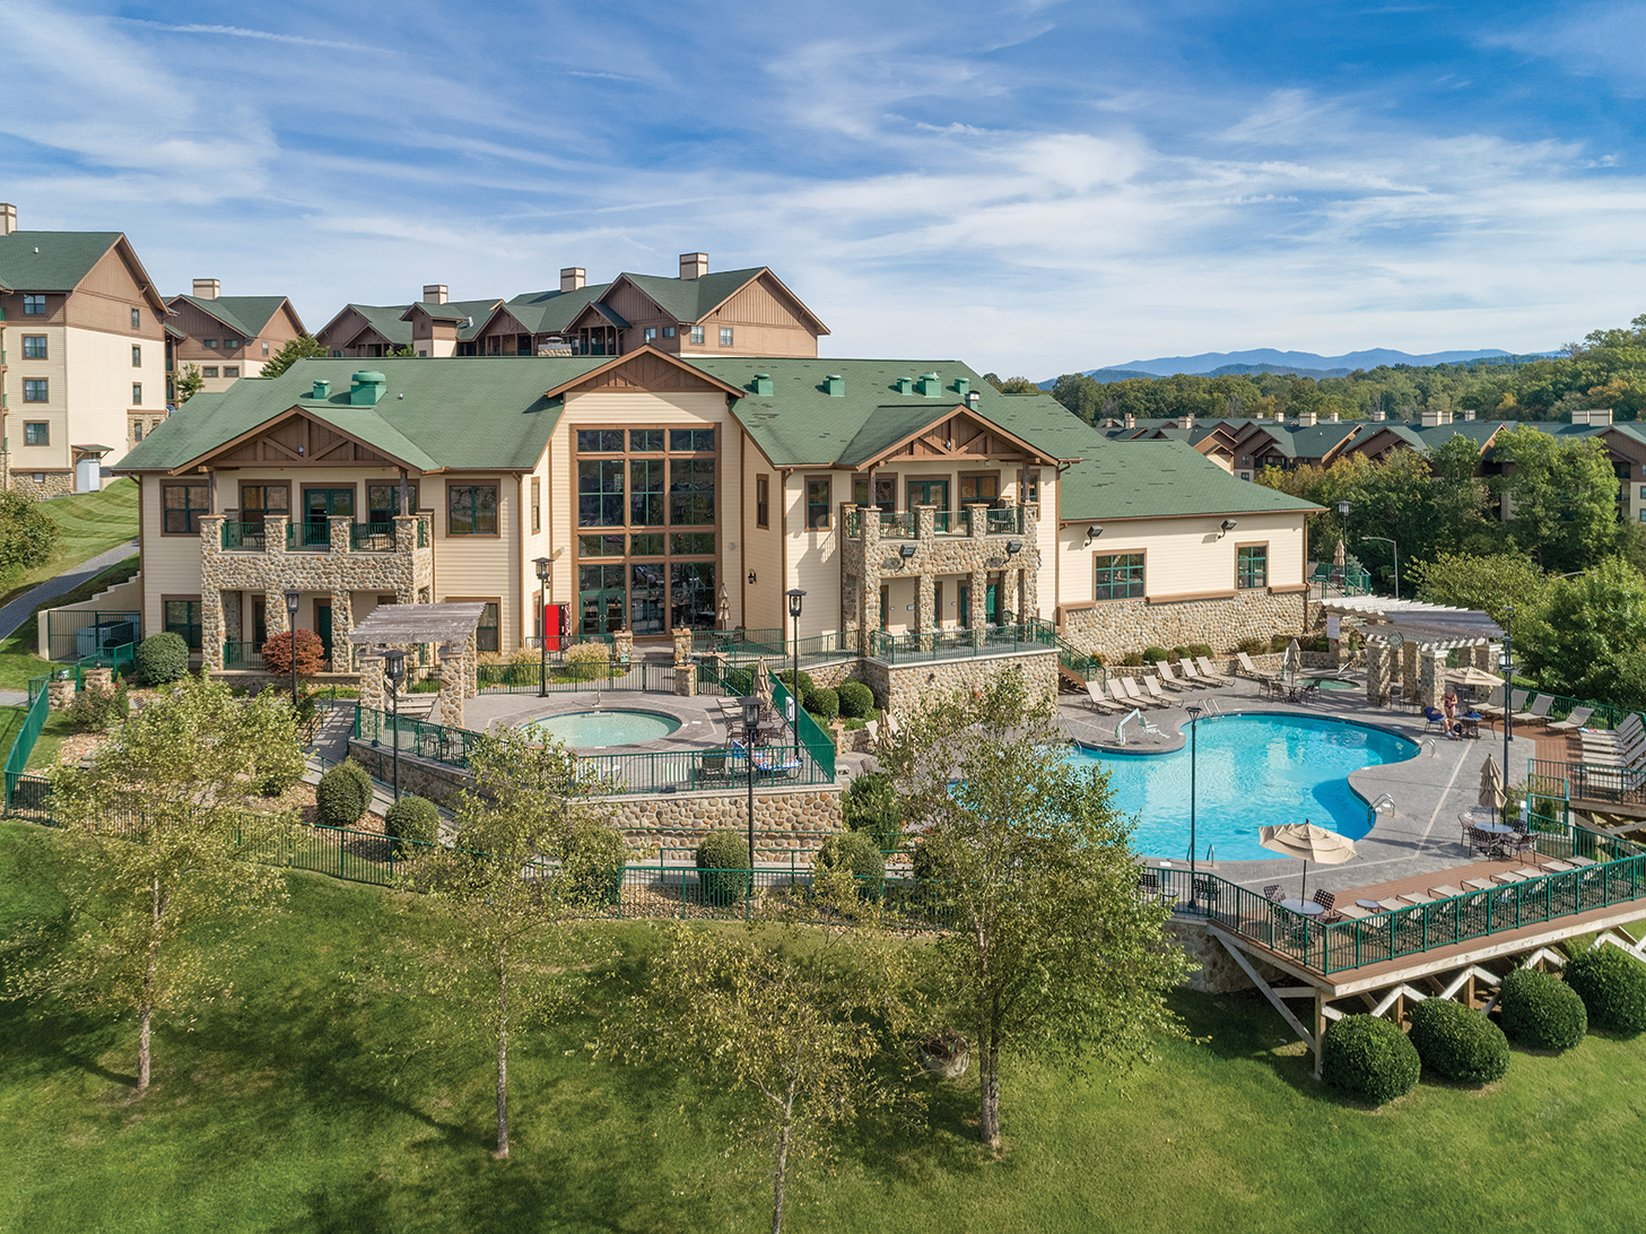 Buy Wyndham Smoky Mountains Timeshares for Sale Sell